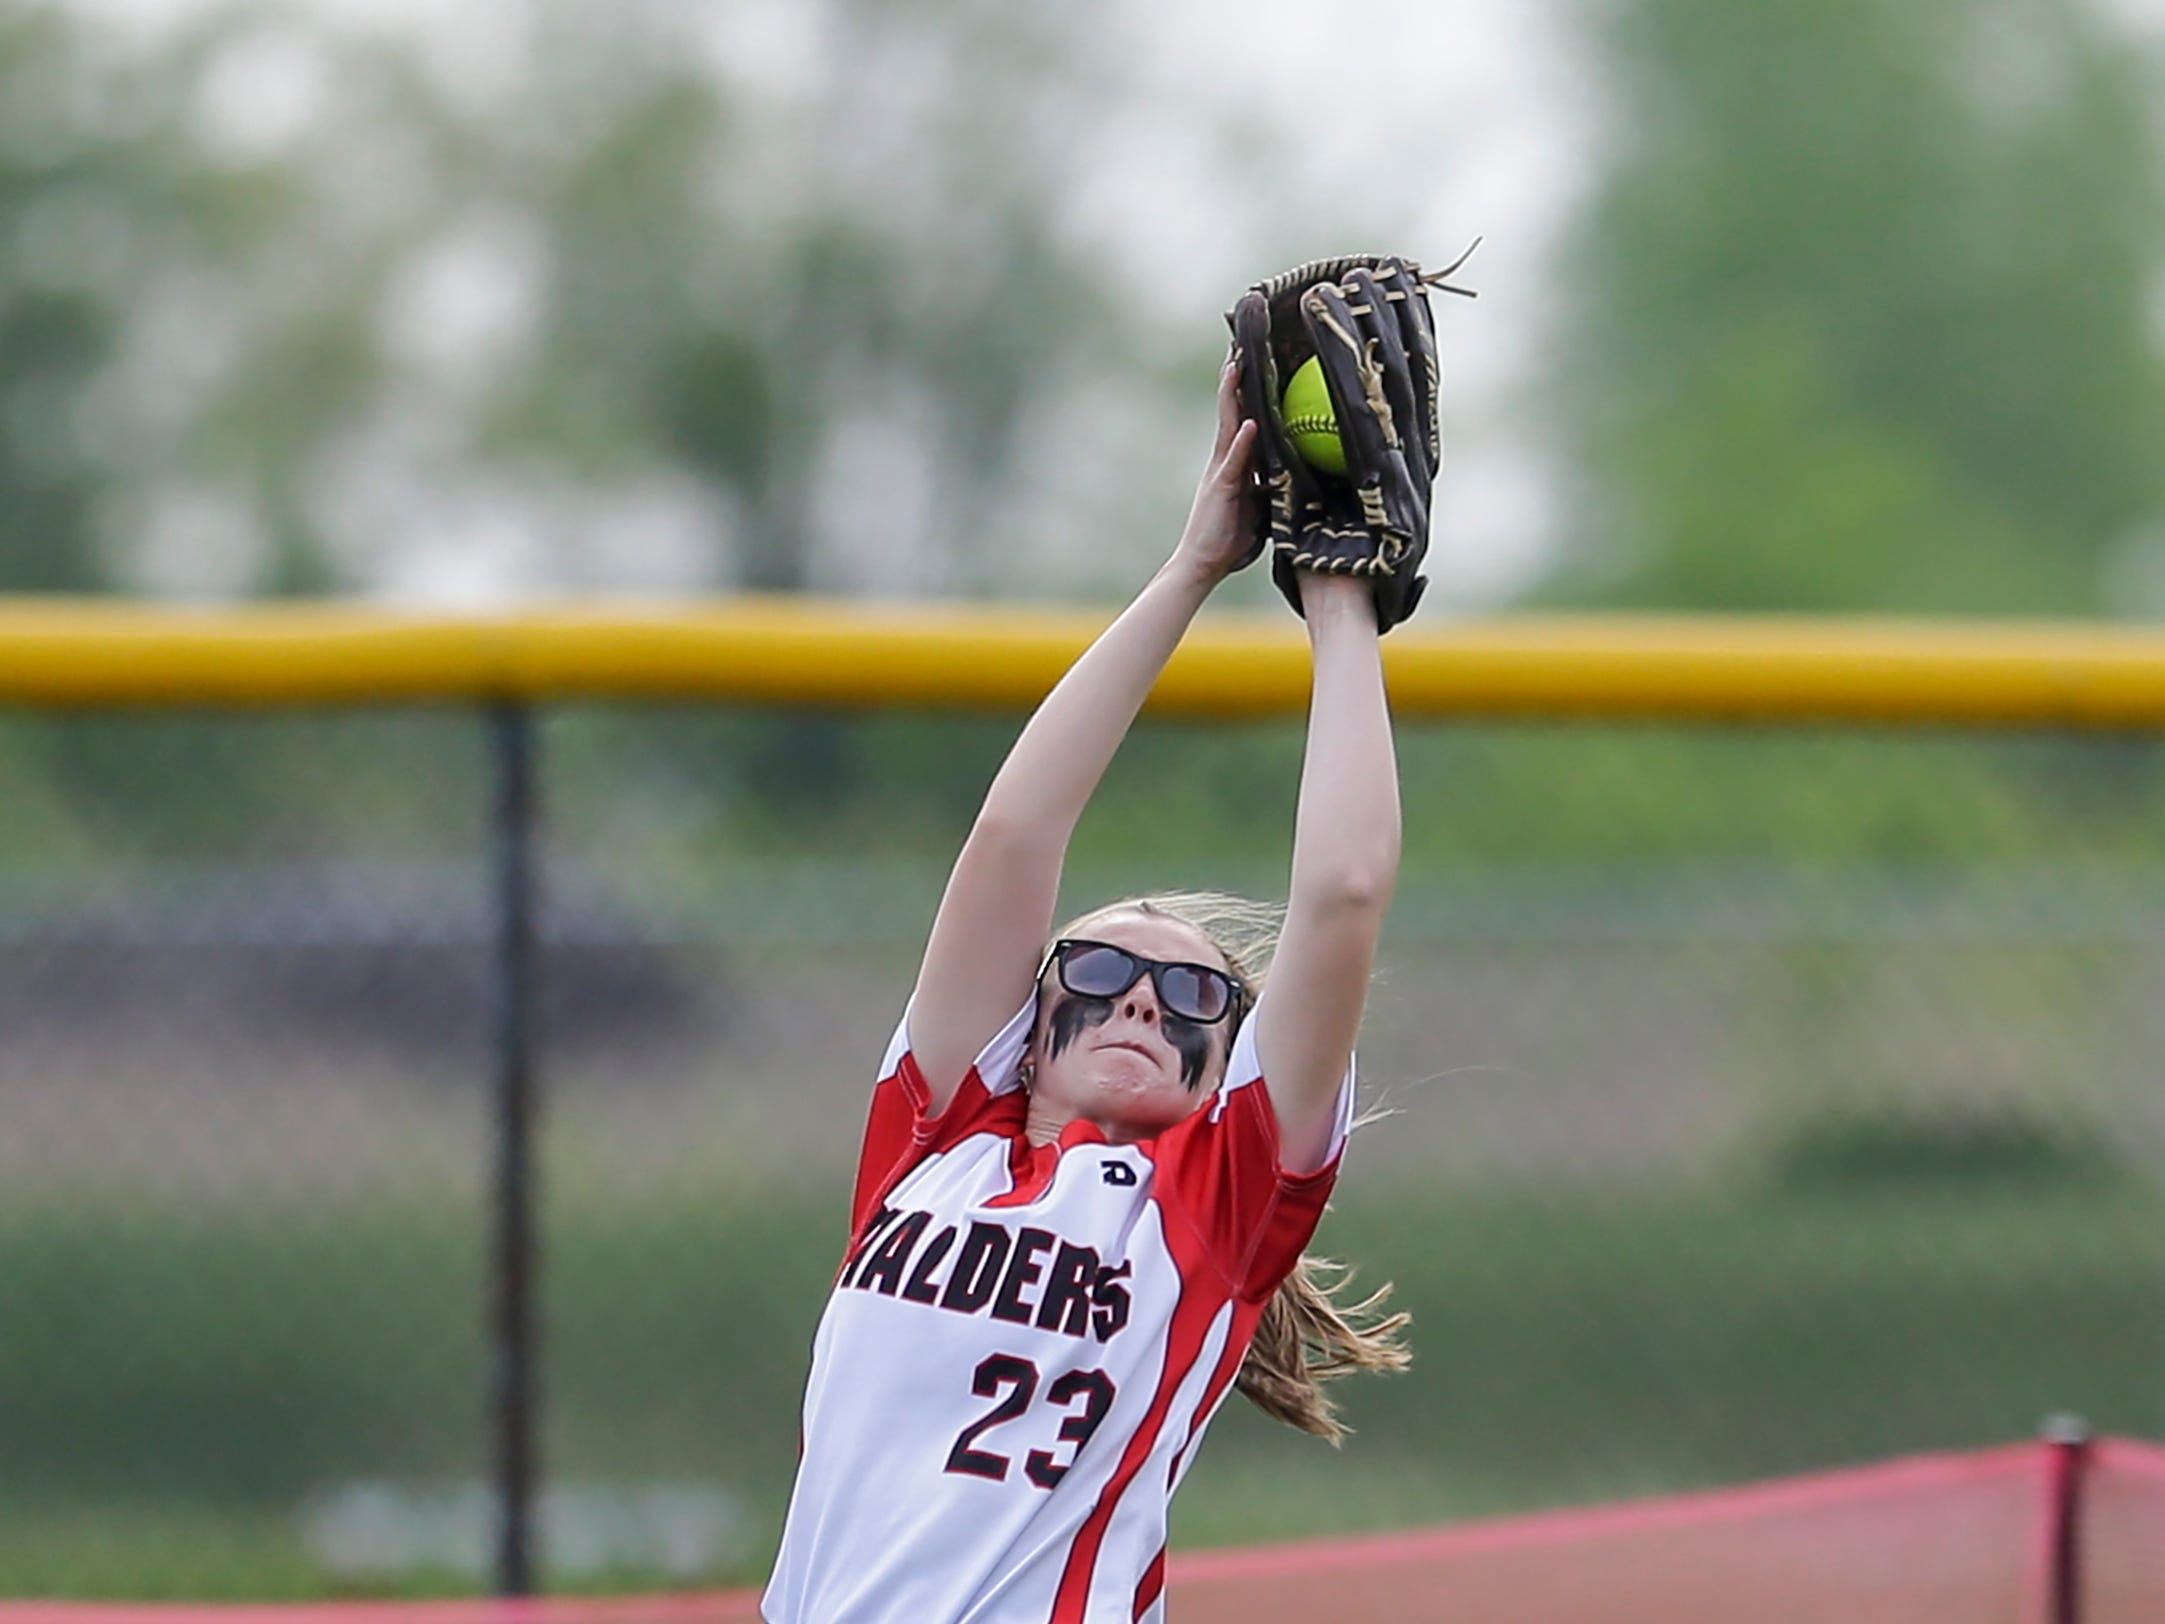 Valders' Madison Sabel (23) jumps to catch a fly ball against Southern Door during the WIAA D3 softball regional championship game at Valders High School Friday, May 25, 2018, in Valders, Wis. Josh Clark/USA TODAY NETWORK-Wisconsin